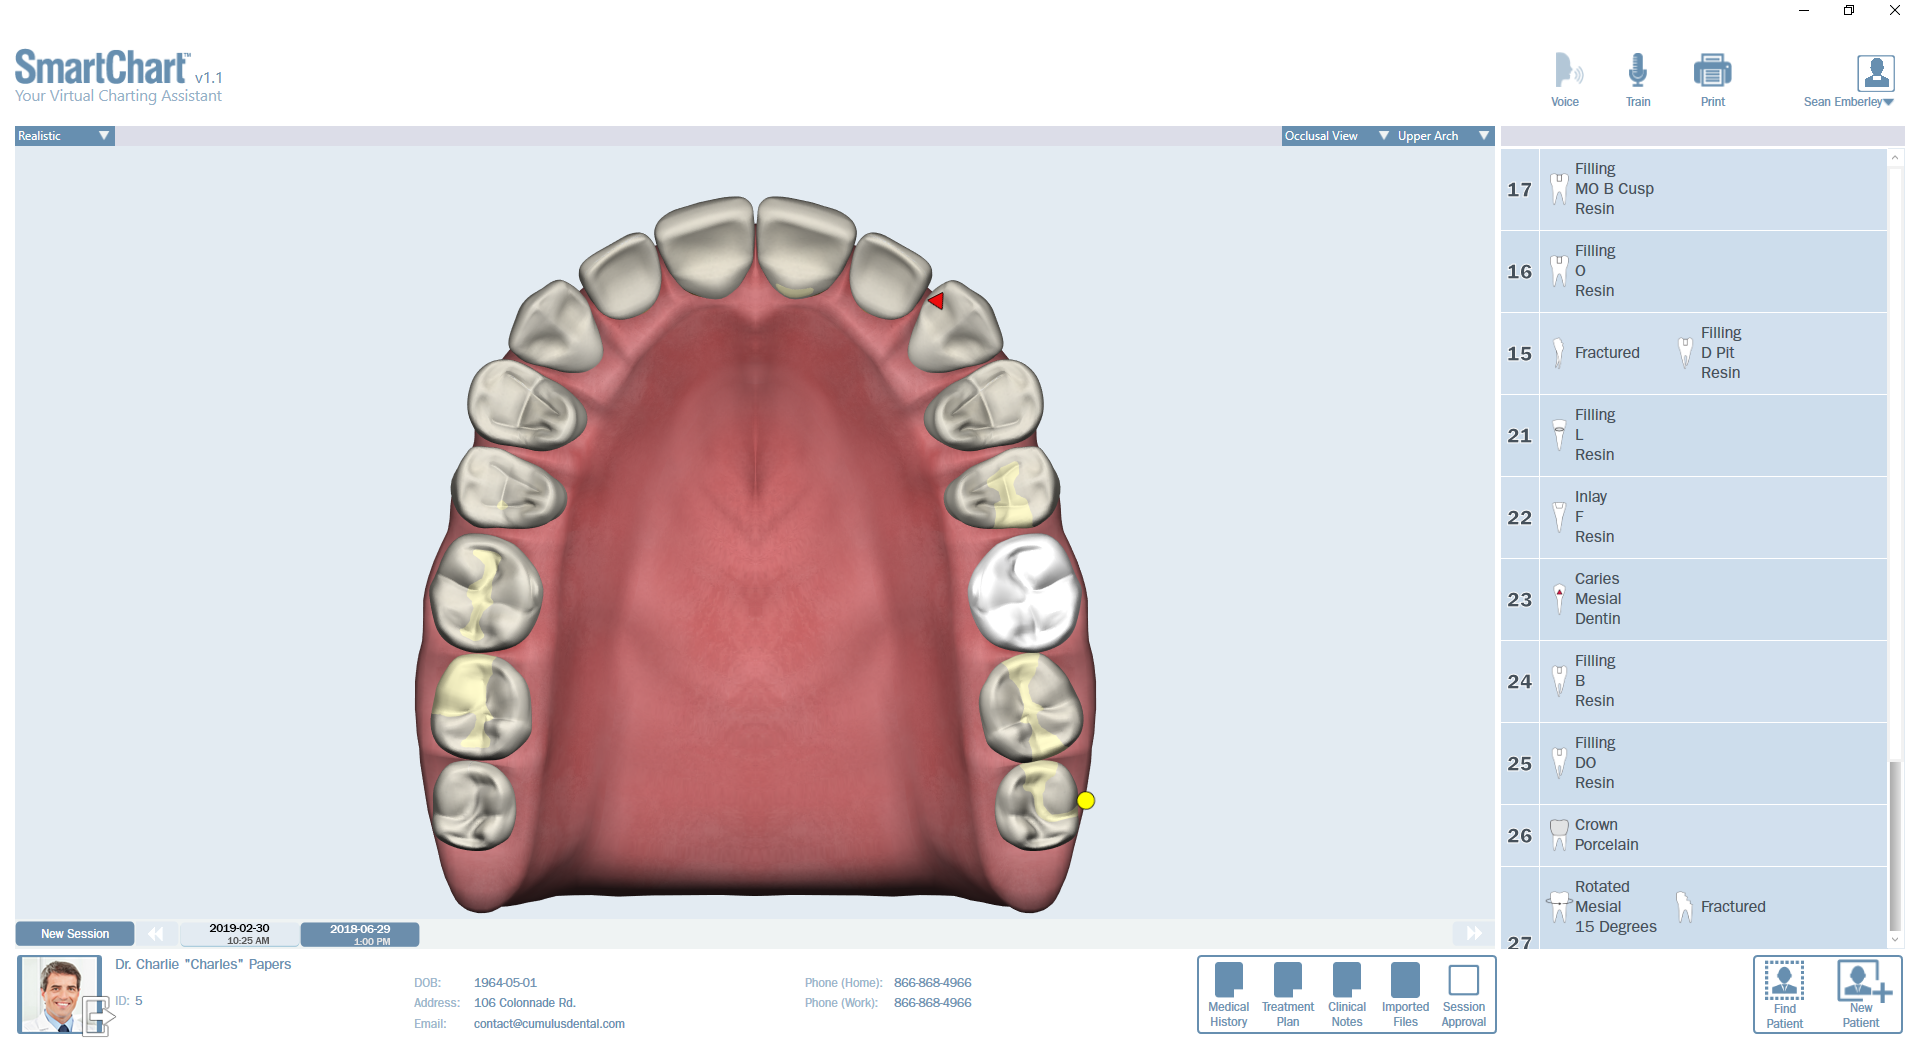 Patient2-Odontogram-Upper-Occlusal.png